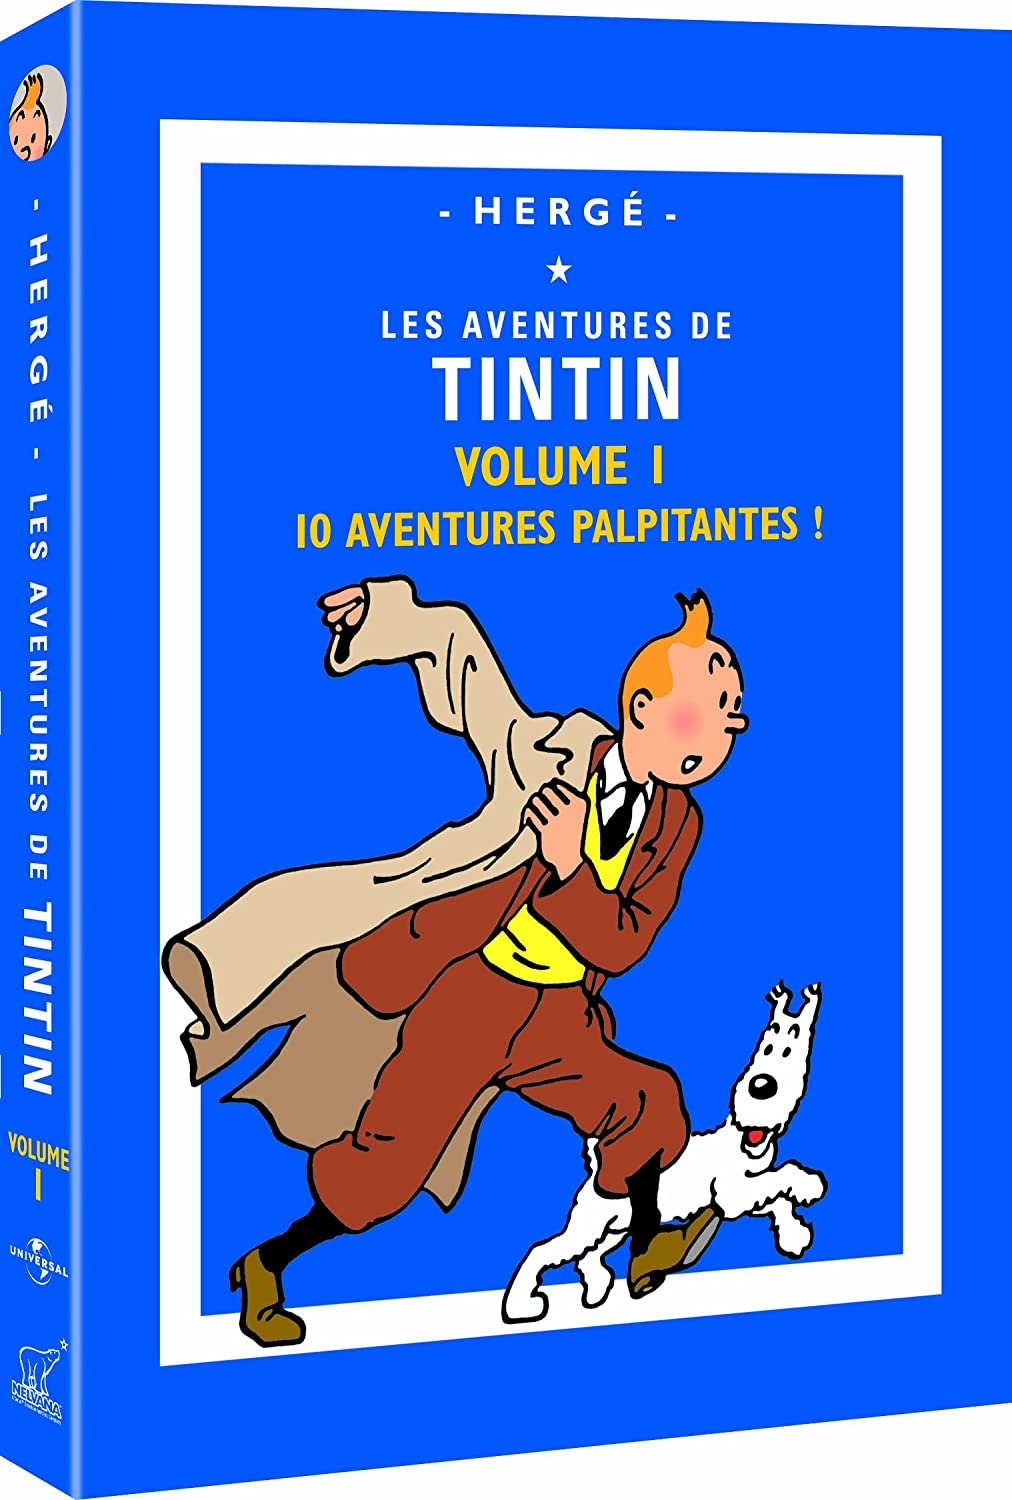 The Charlotte Mall Adventures of NEW before selling Vol. Tintin 1